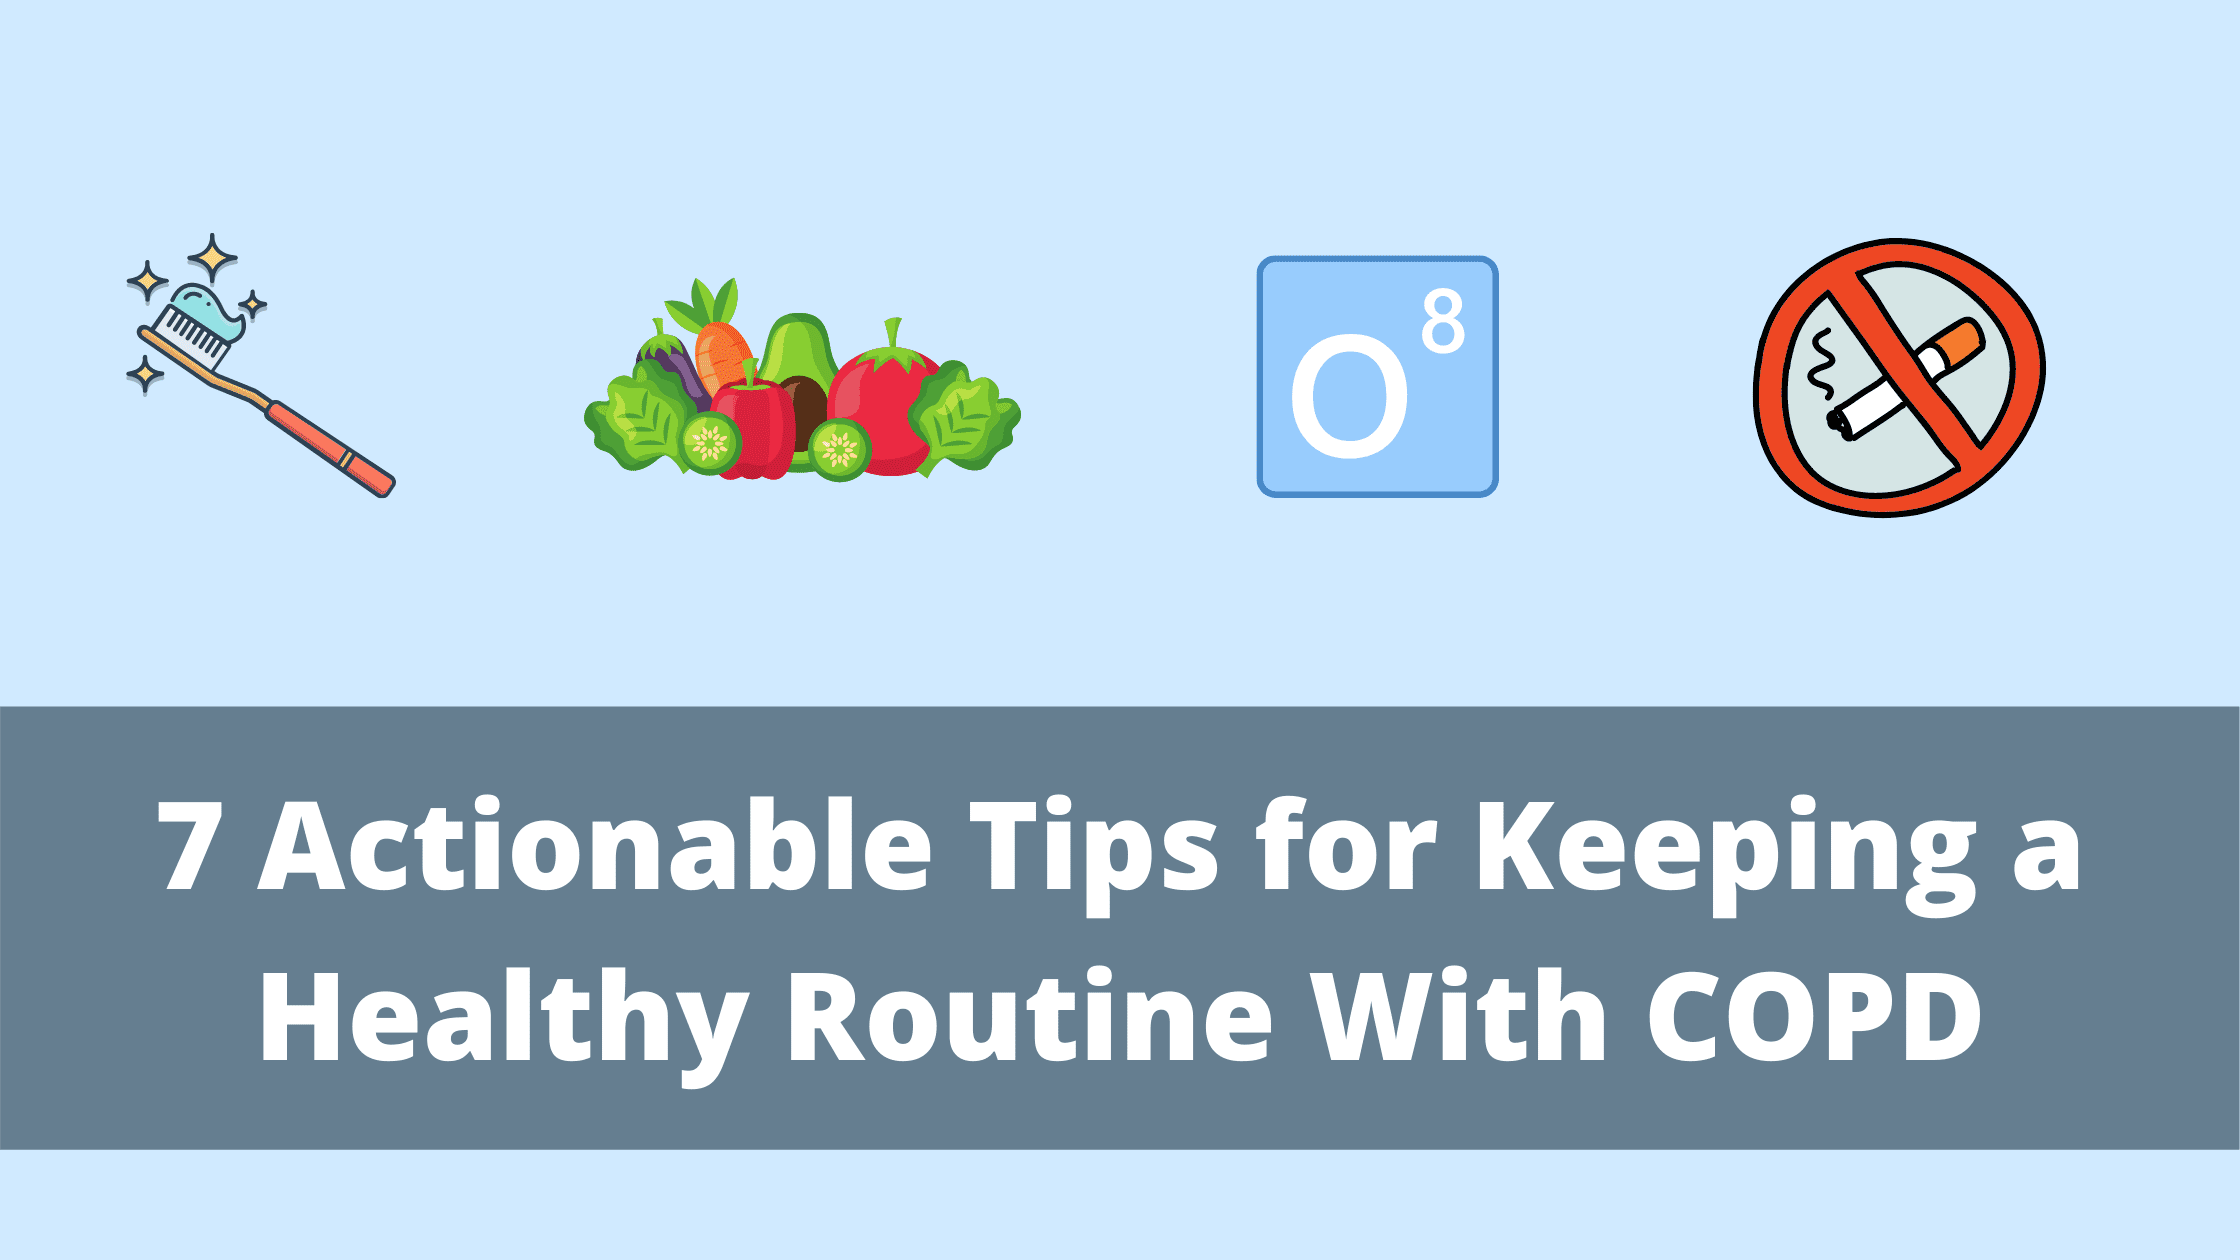 7 Actionable Tips for Keeping a Healthy Routine With COPD